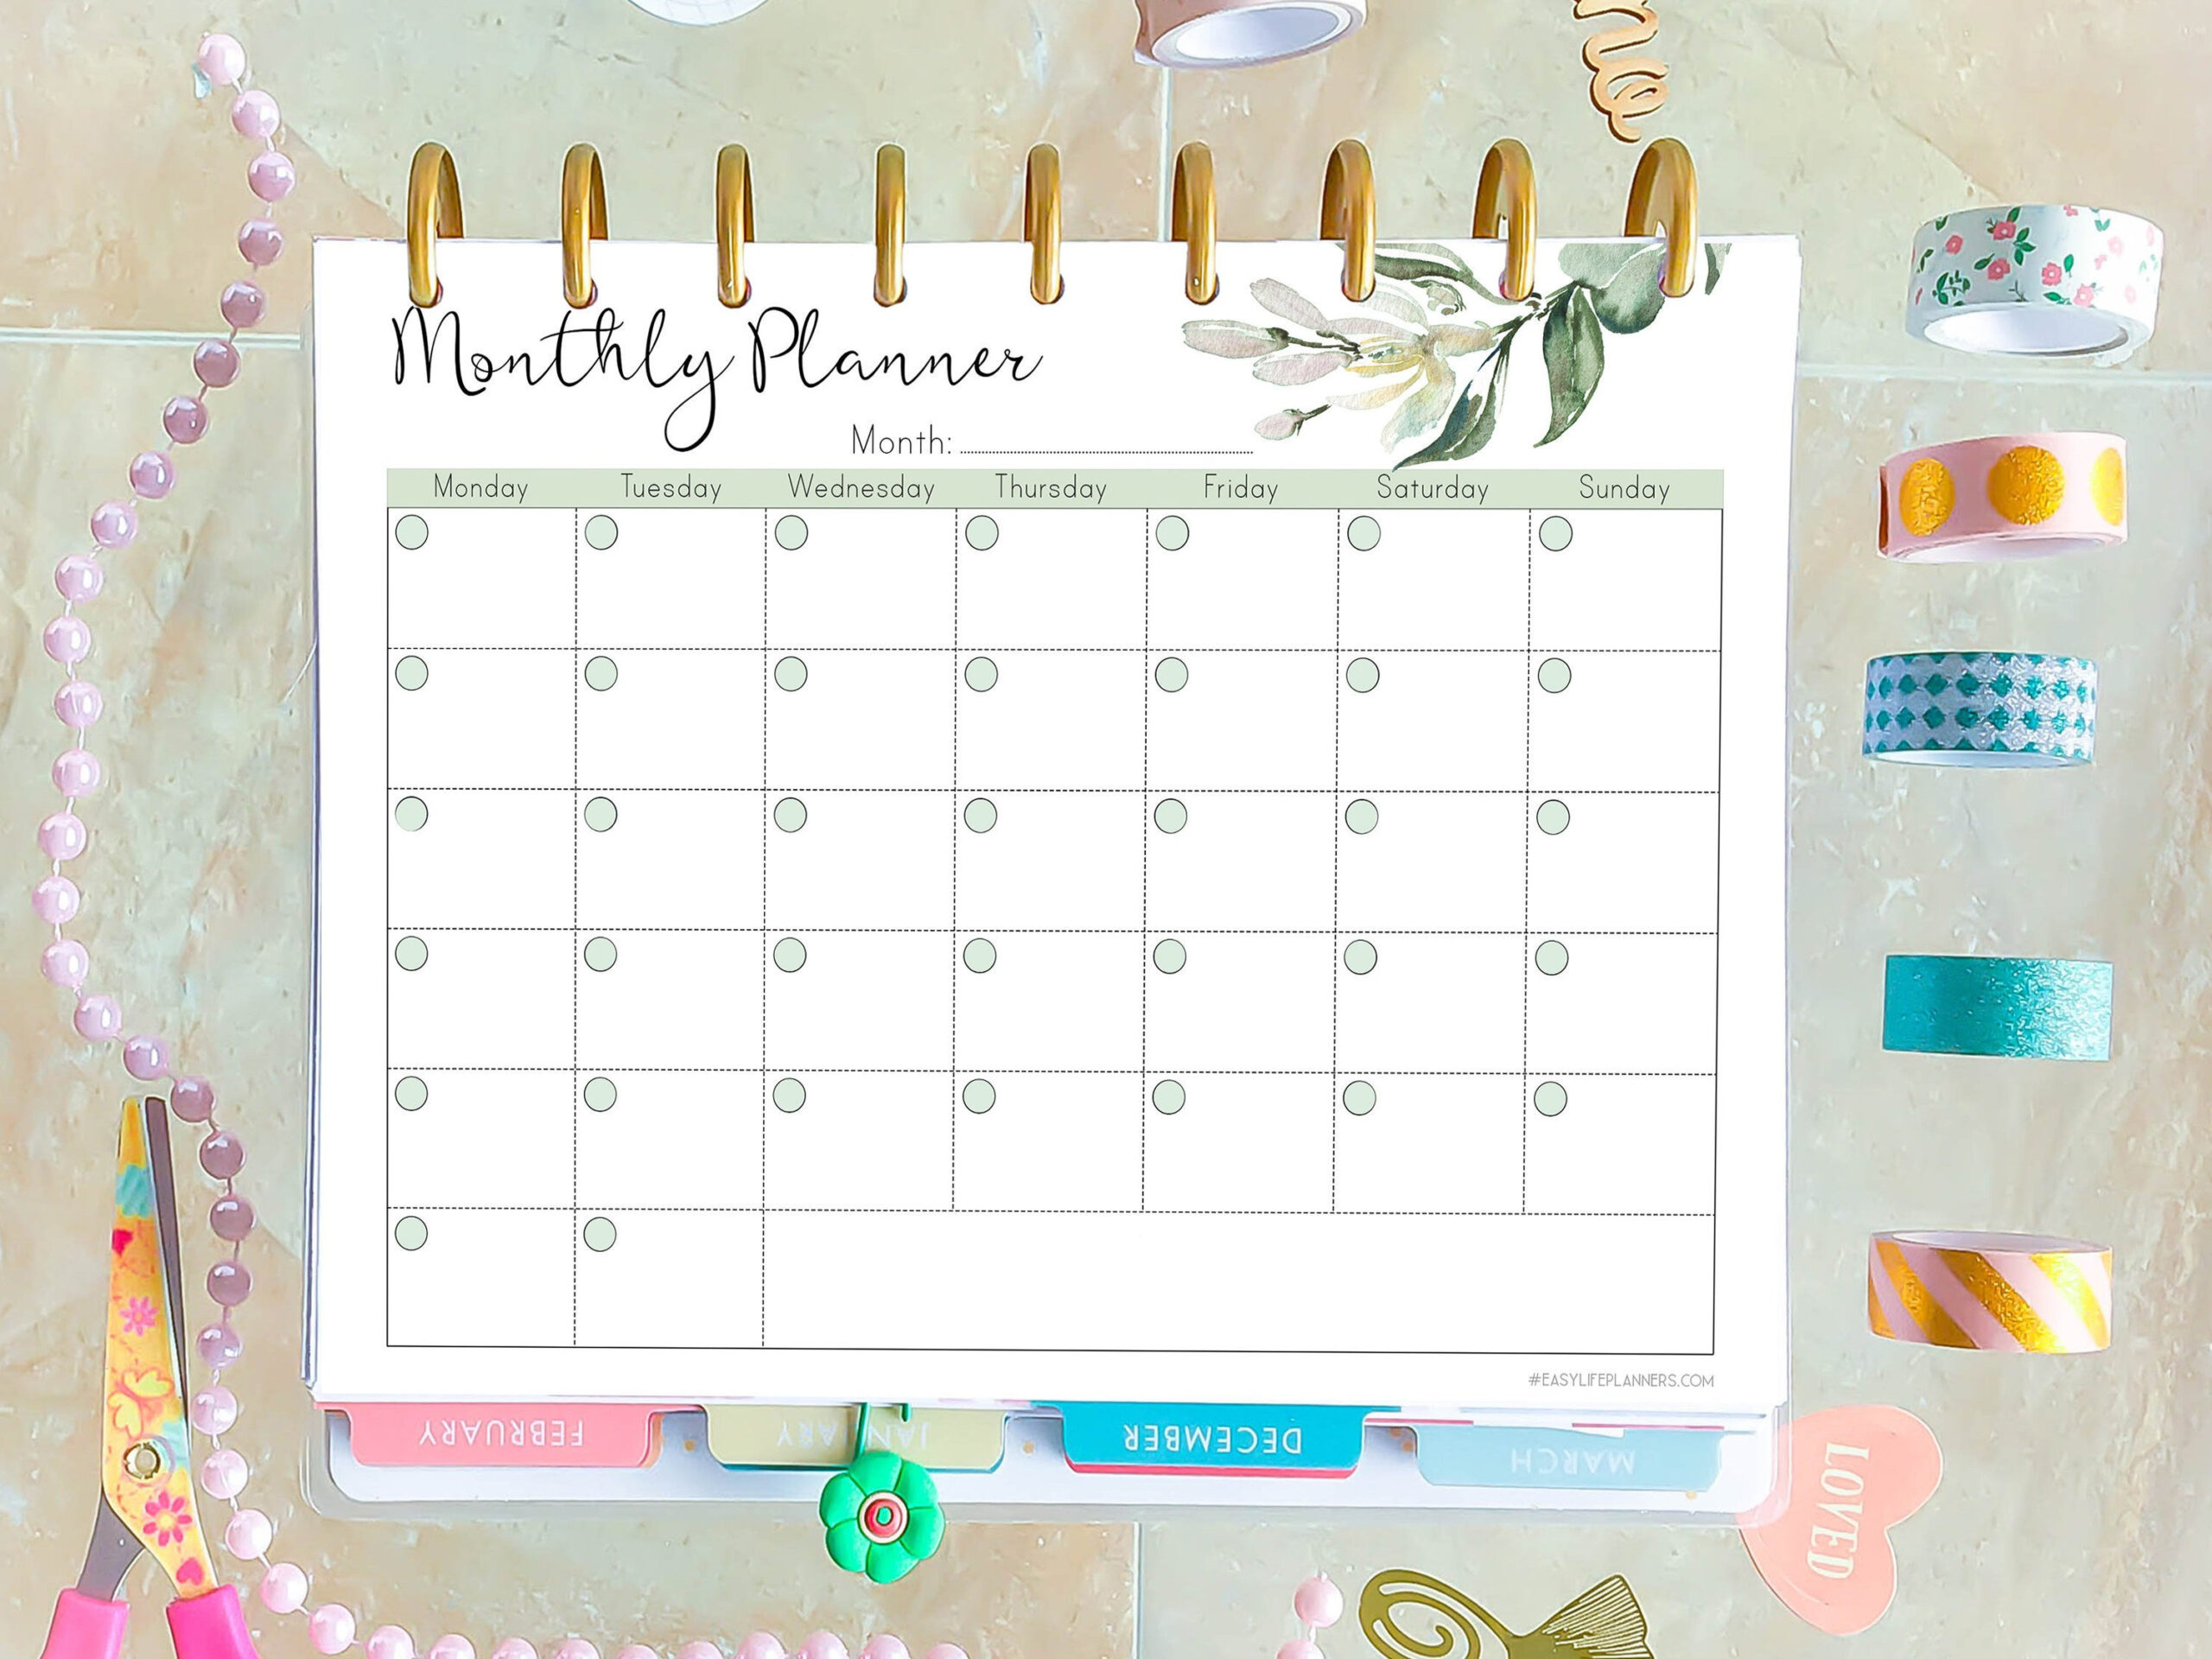 Monthly Planner Printable, Made To Fit Happy Planner intended for Free Happy Planner Monthly Printable Photo